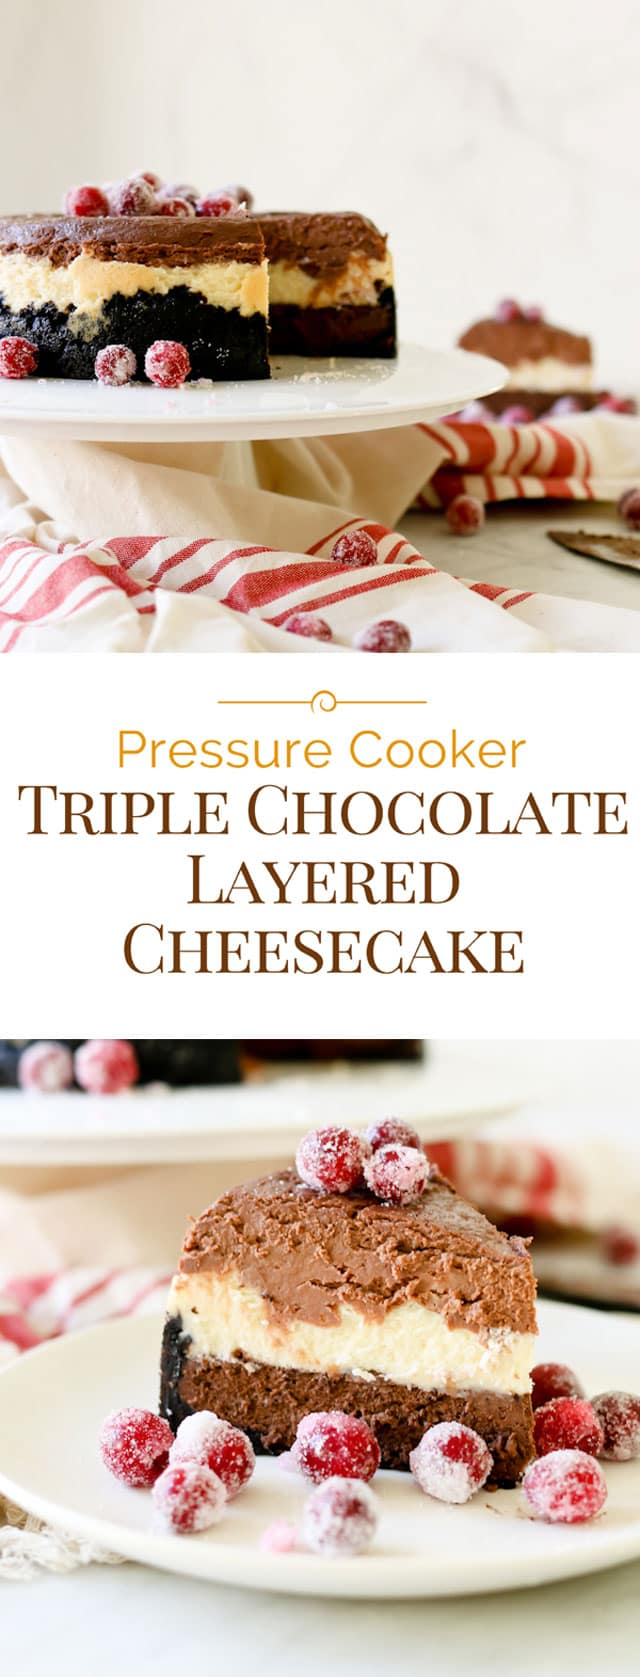 photo collage of Pressure Cooker Triple Chocolate Layered Cheesecake